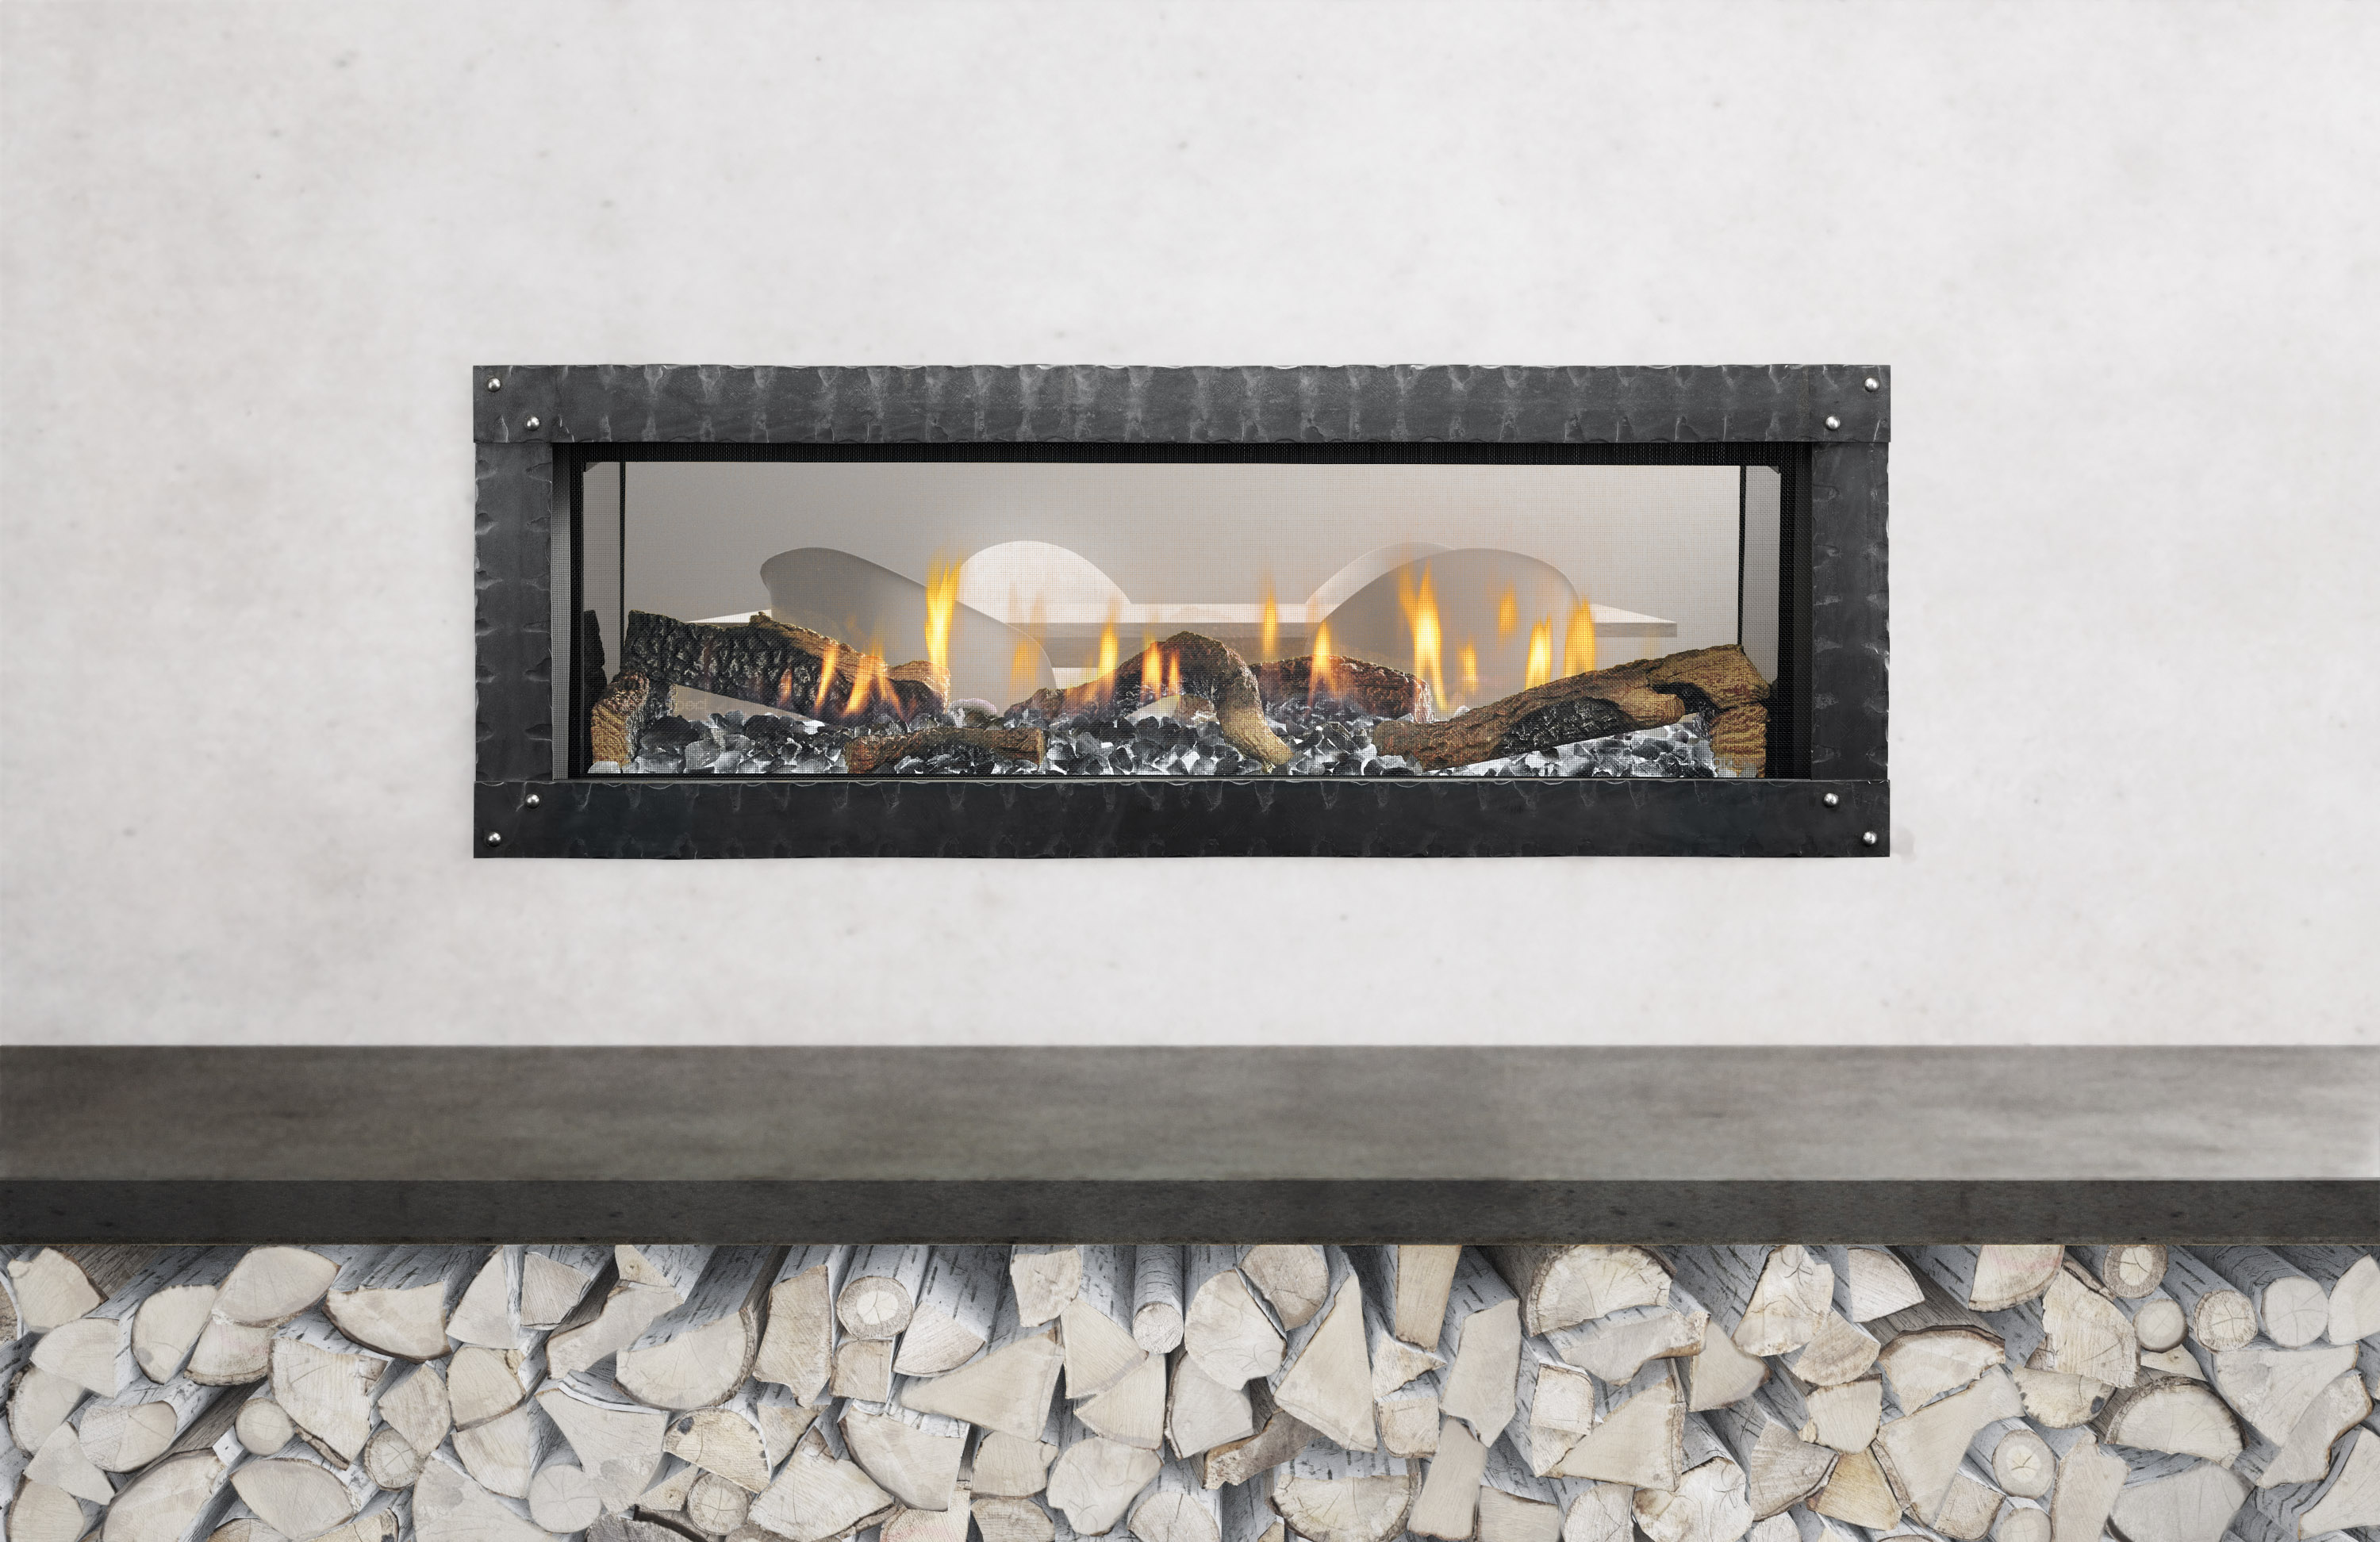 linear fireplaces trend up even behind barrier screens remodeling rh remodeling hw net